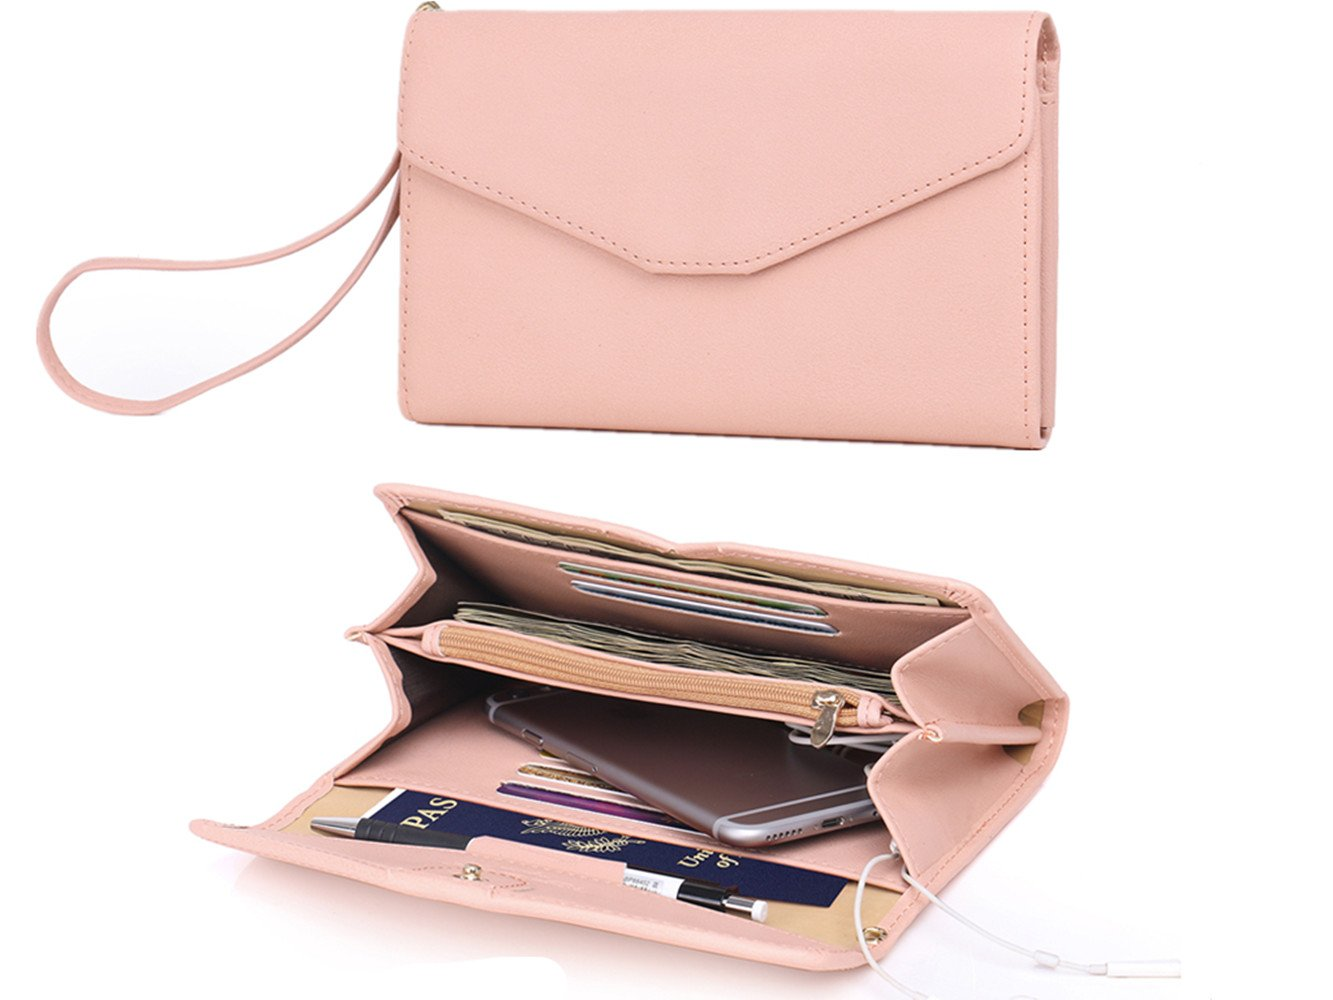 Zg Wristlets for Women, Cell Phone Clutch Wallet, Passport Wallet, All In One Purse Extra Capacity - Pink